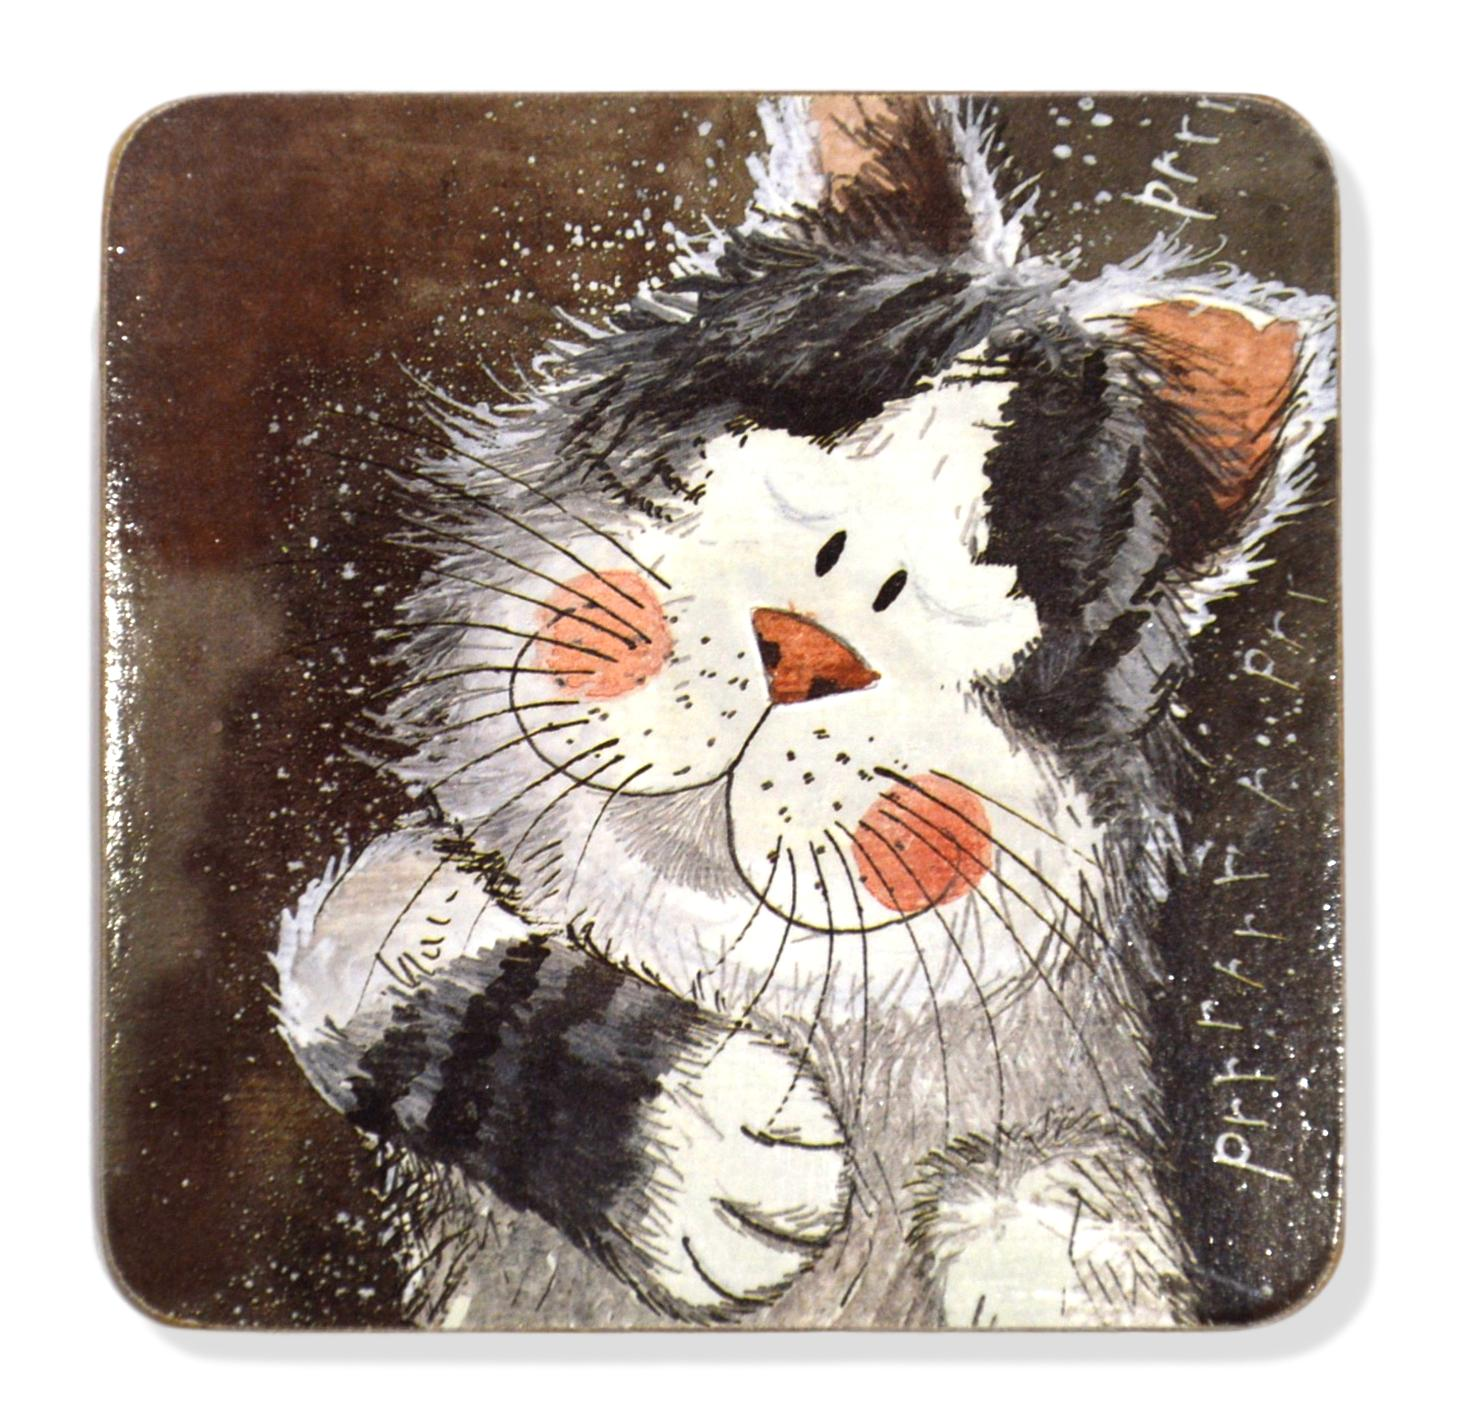 Set of 2 Taking It Easy Cat Coasters